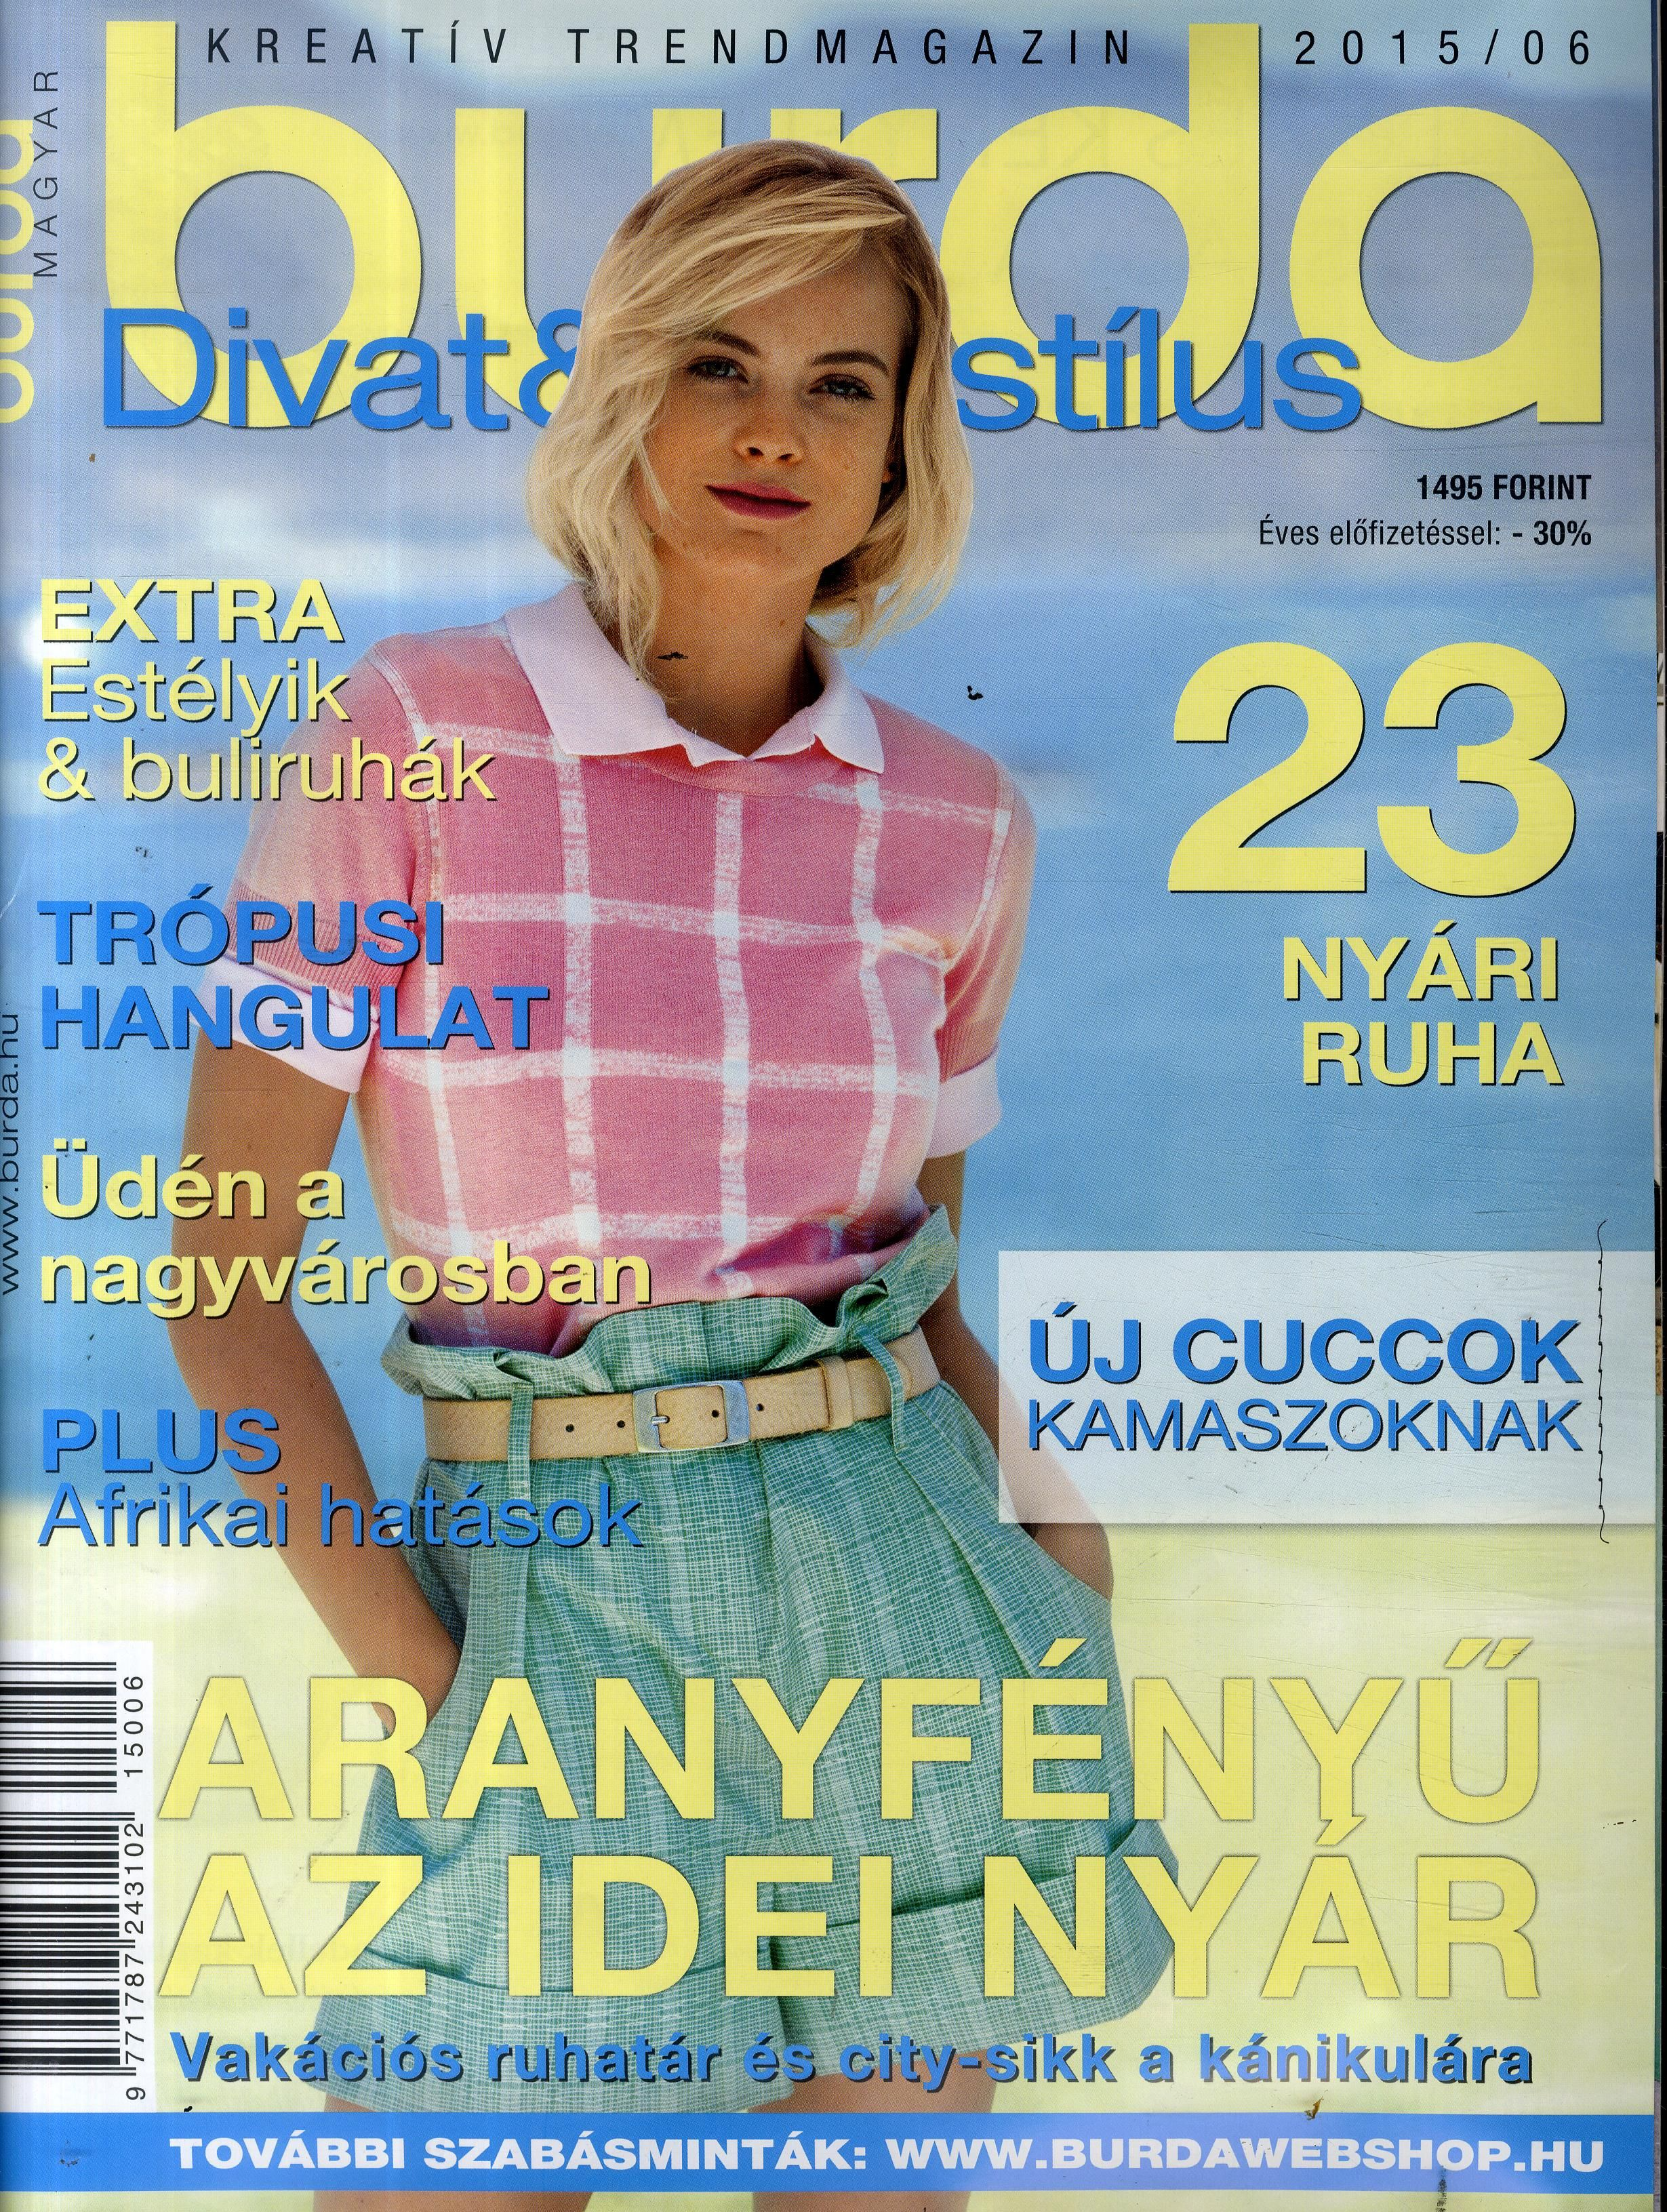 Pin by Nikolett MajzikSós on My Burda magazines Movie